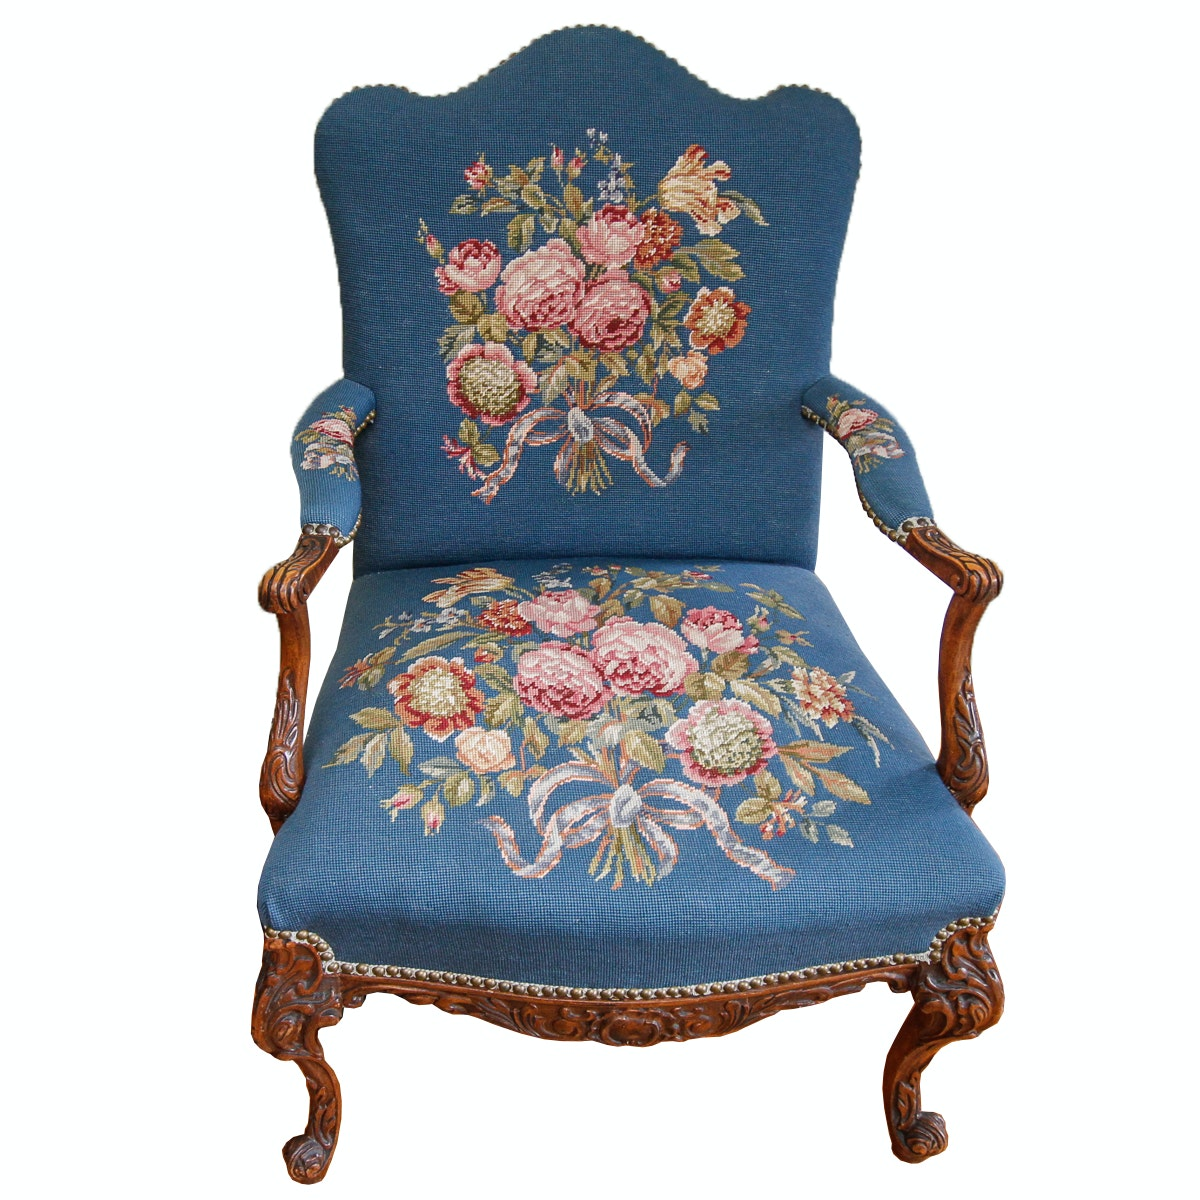 Vintage Louis XV Style Armchair with Needlepoint Upholstery